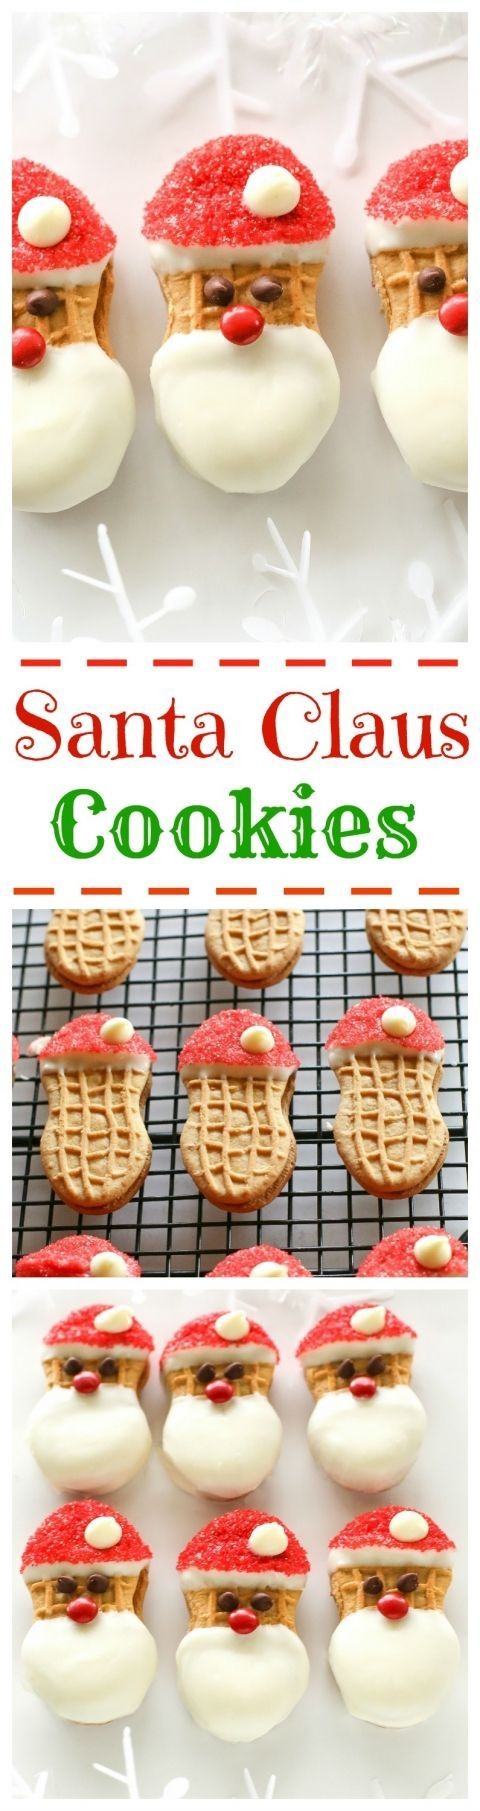 Santa Claus Cookies - easy Nutter Butter based cookies to make with your kids that are fancy enough to give to your friends.: